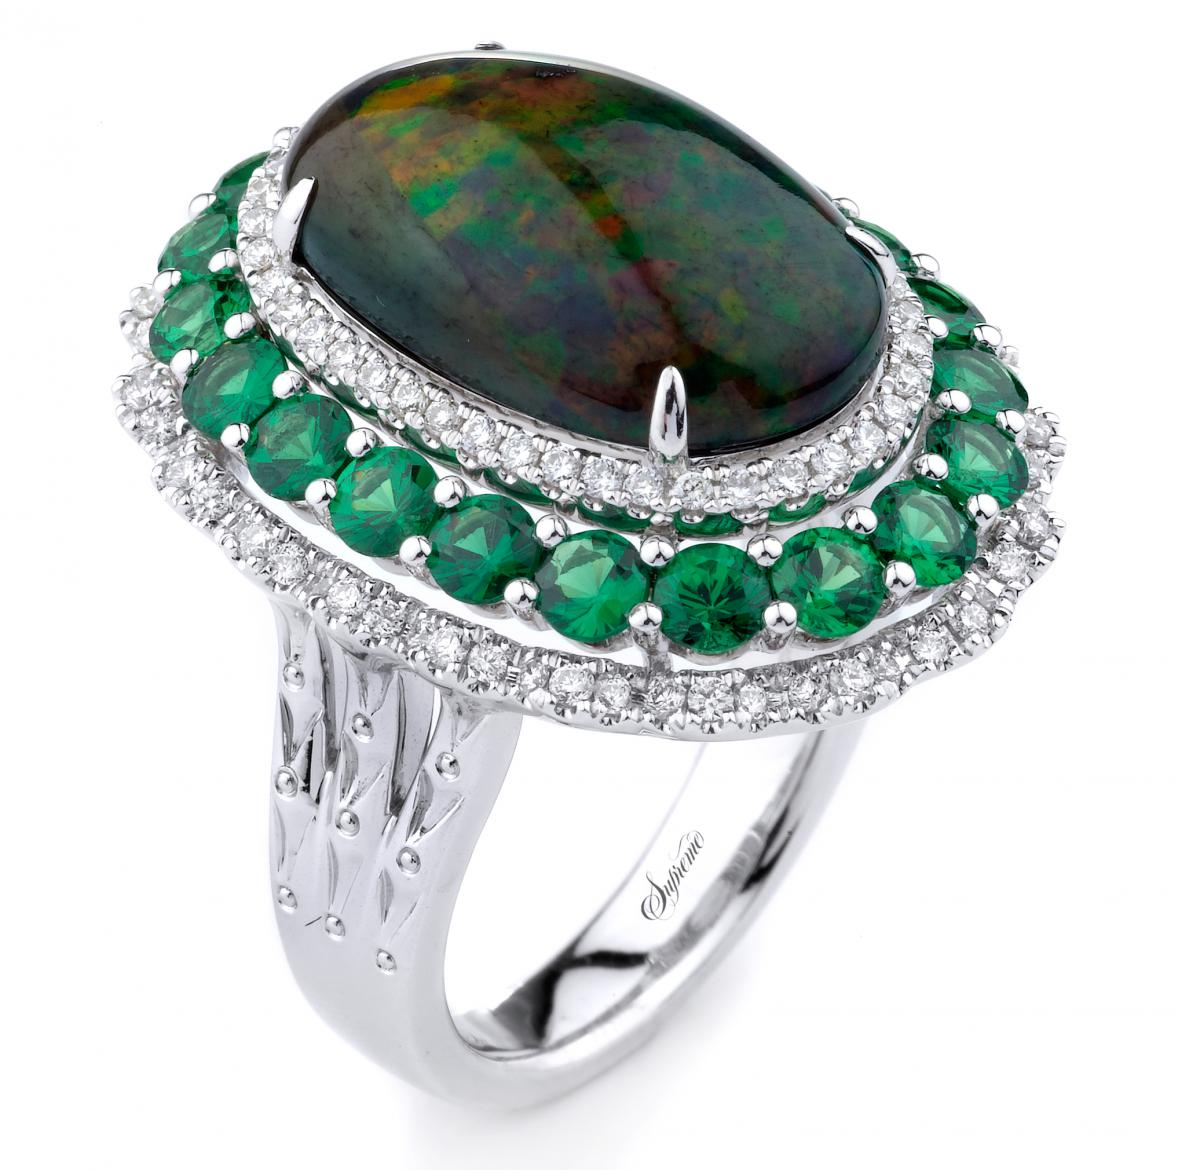 Supreme Jewelry opal and tsavorite ring